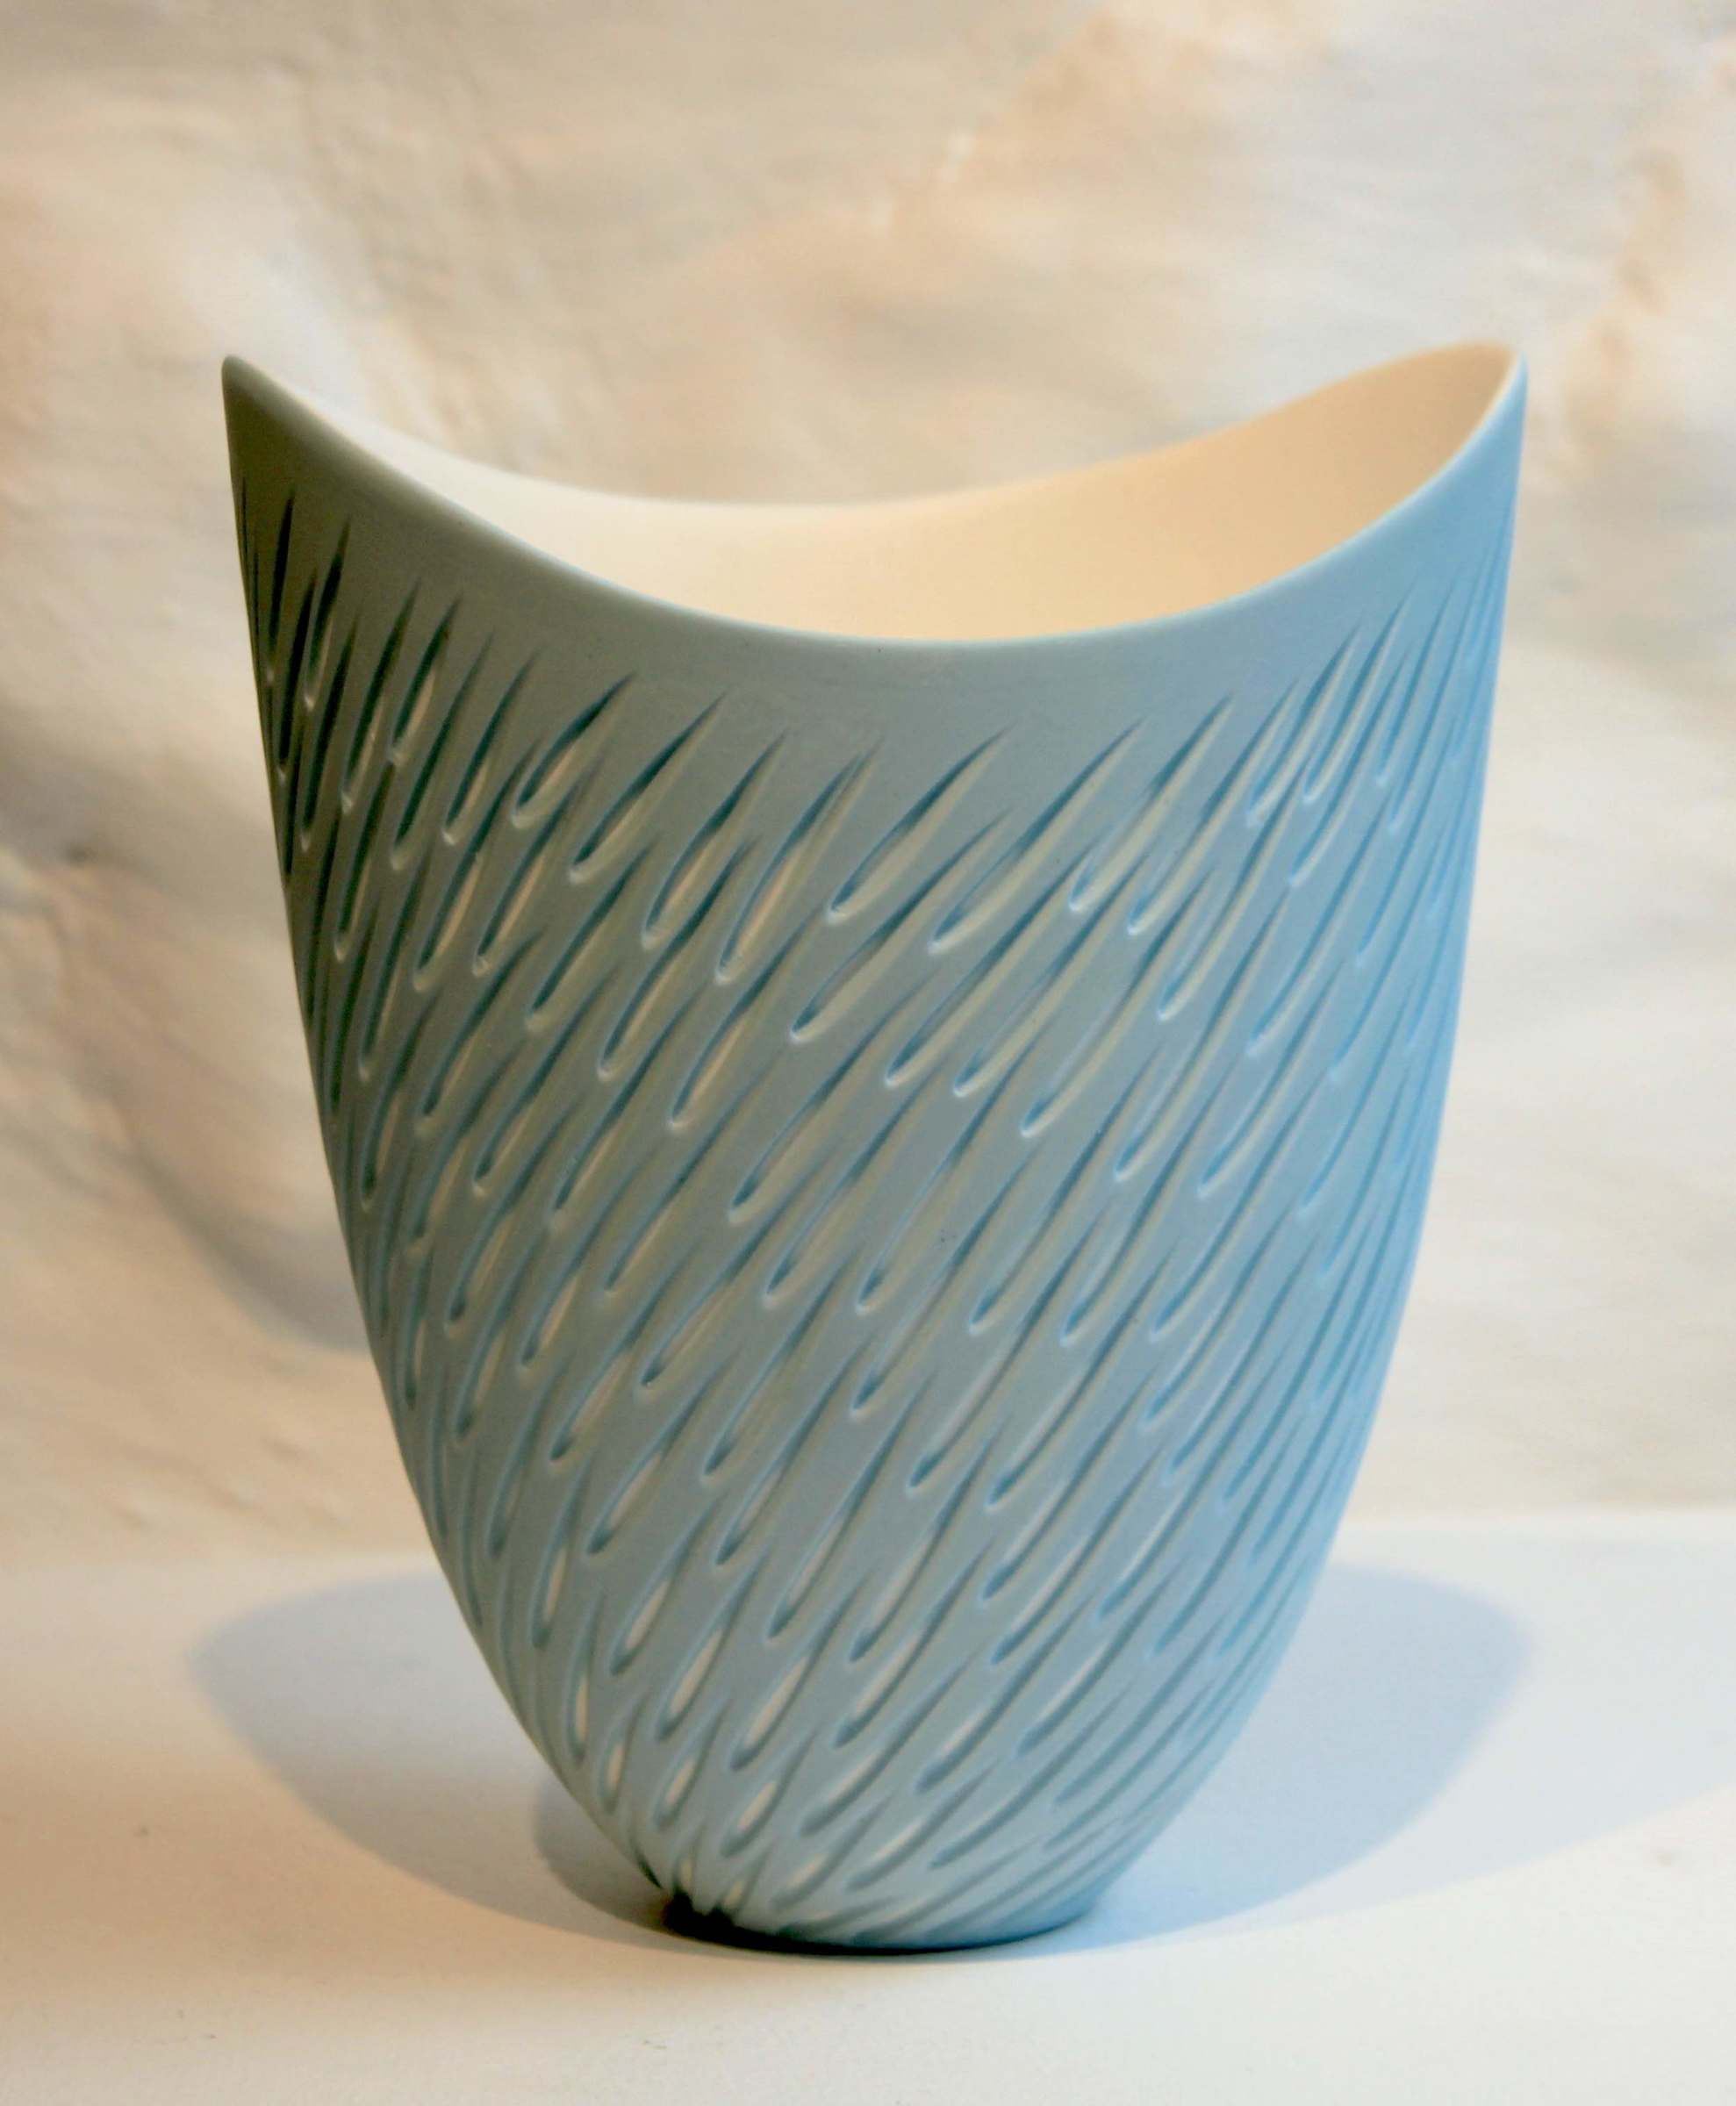 "<span class=""link fancybox-details-link""><a href=""/artists/60-sasha-wardell/works/5494-sasha-wardell-shoal-vase-2018/"">View Detail Page</a></span><div class=""artist""><strong>Sasha Wardell</strong></div> <div class=""title""><em>Shoal Vase</em>, 2018</div> <div class=""signed_and_dated"">inscribed with artist initials on base</div> <div class=""medium"">blue/white layered & sliced china</div> <div class=""dimensions"">17 x 14 cm<br /> 6 3/4 x 5 1/2 inches</div><div class=""copyright_line"">OwnArt: £ 19 x 10 Months, 0% APR</div>"